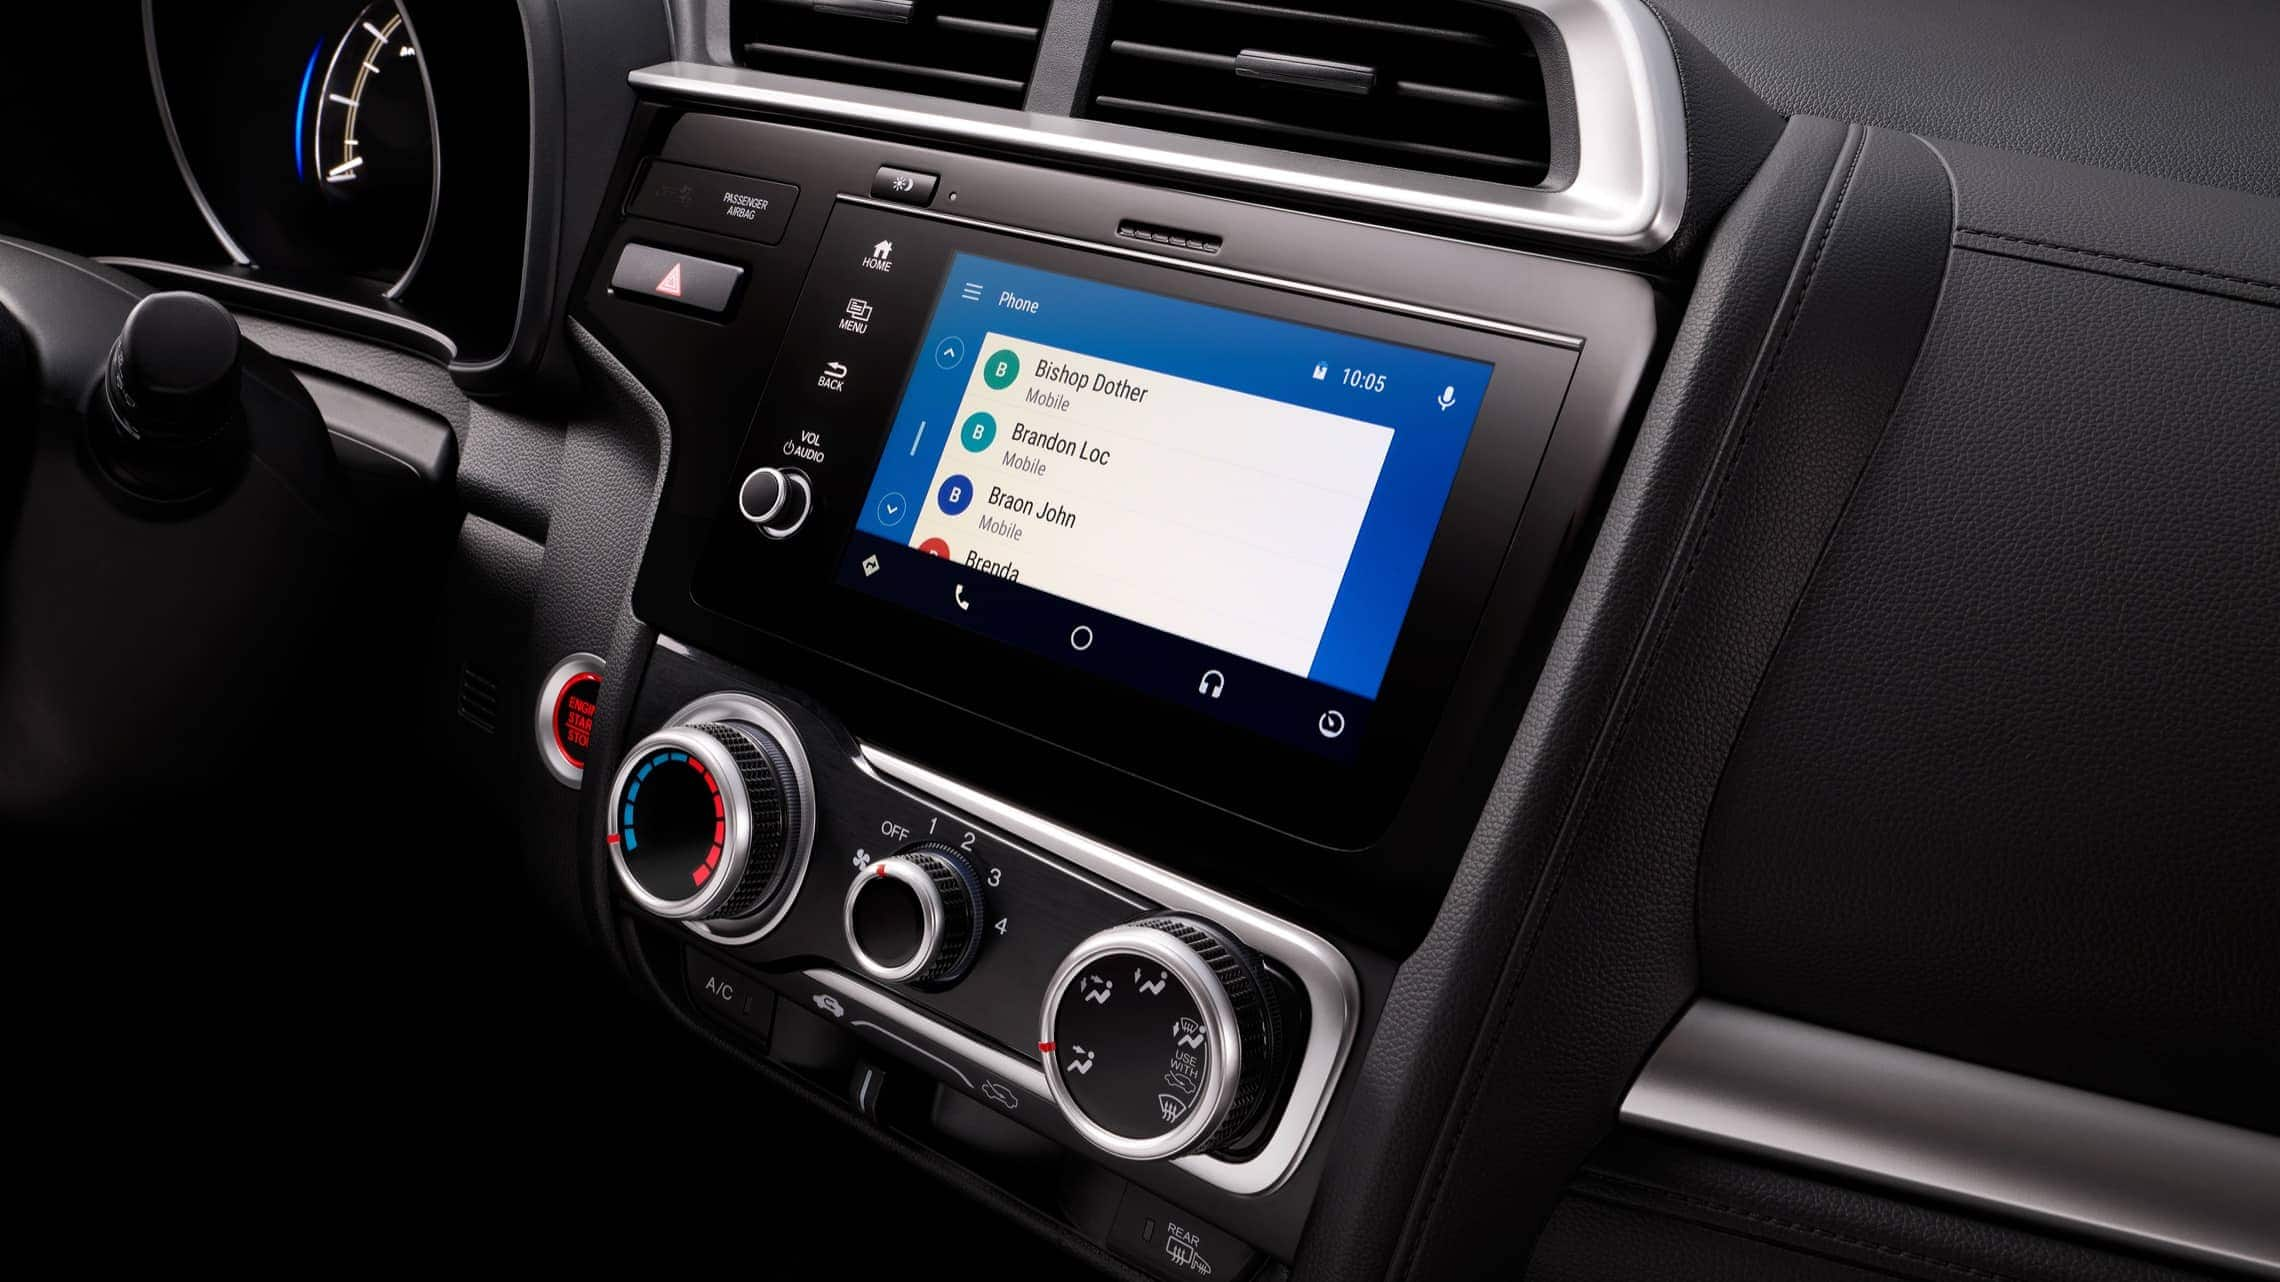 Display Audio touch-screen with Android Auto™ detail on 2019 Honda Fit.